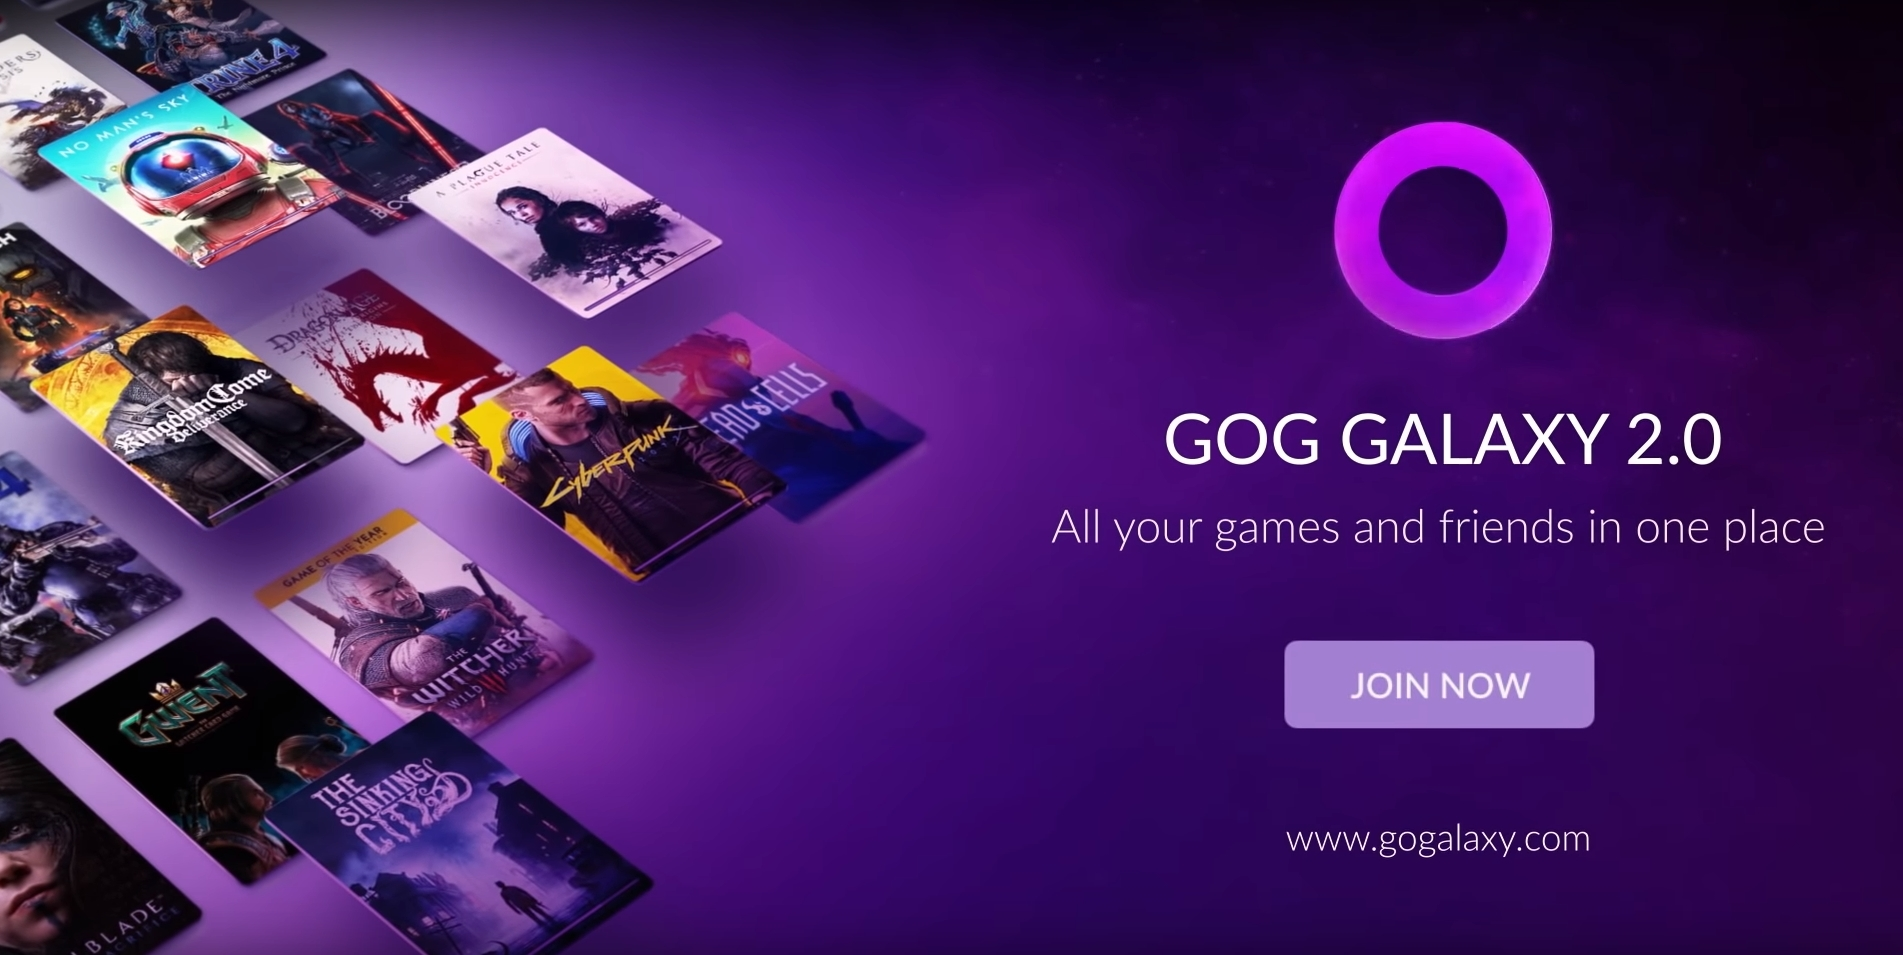 GOG Adds GOG Galaxy App to Compile Games From Multiple Libraries Into One